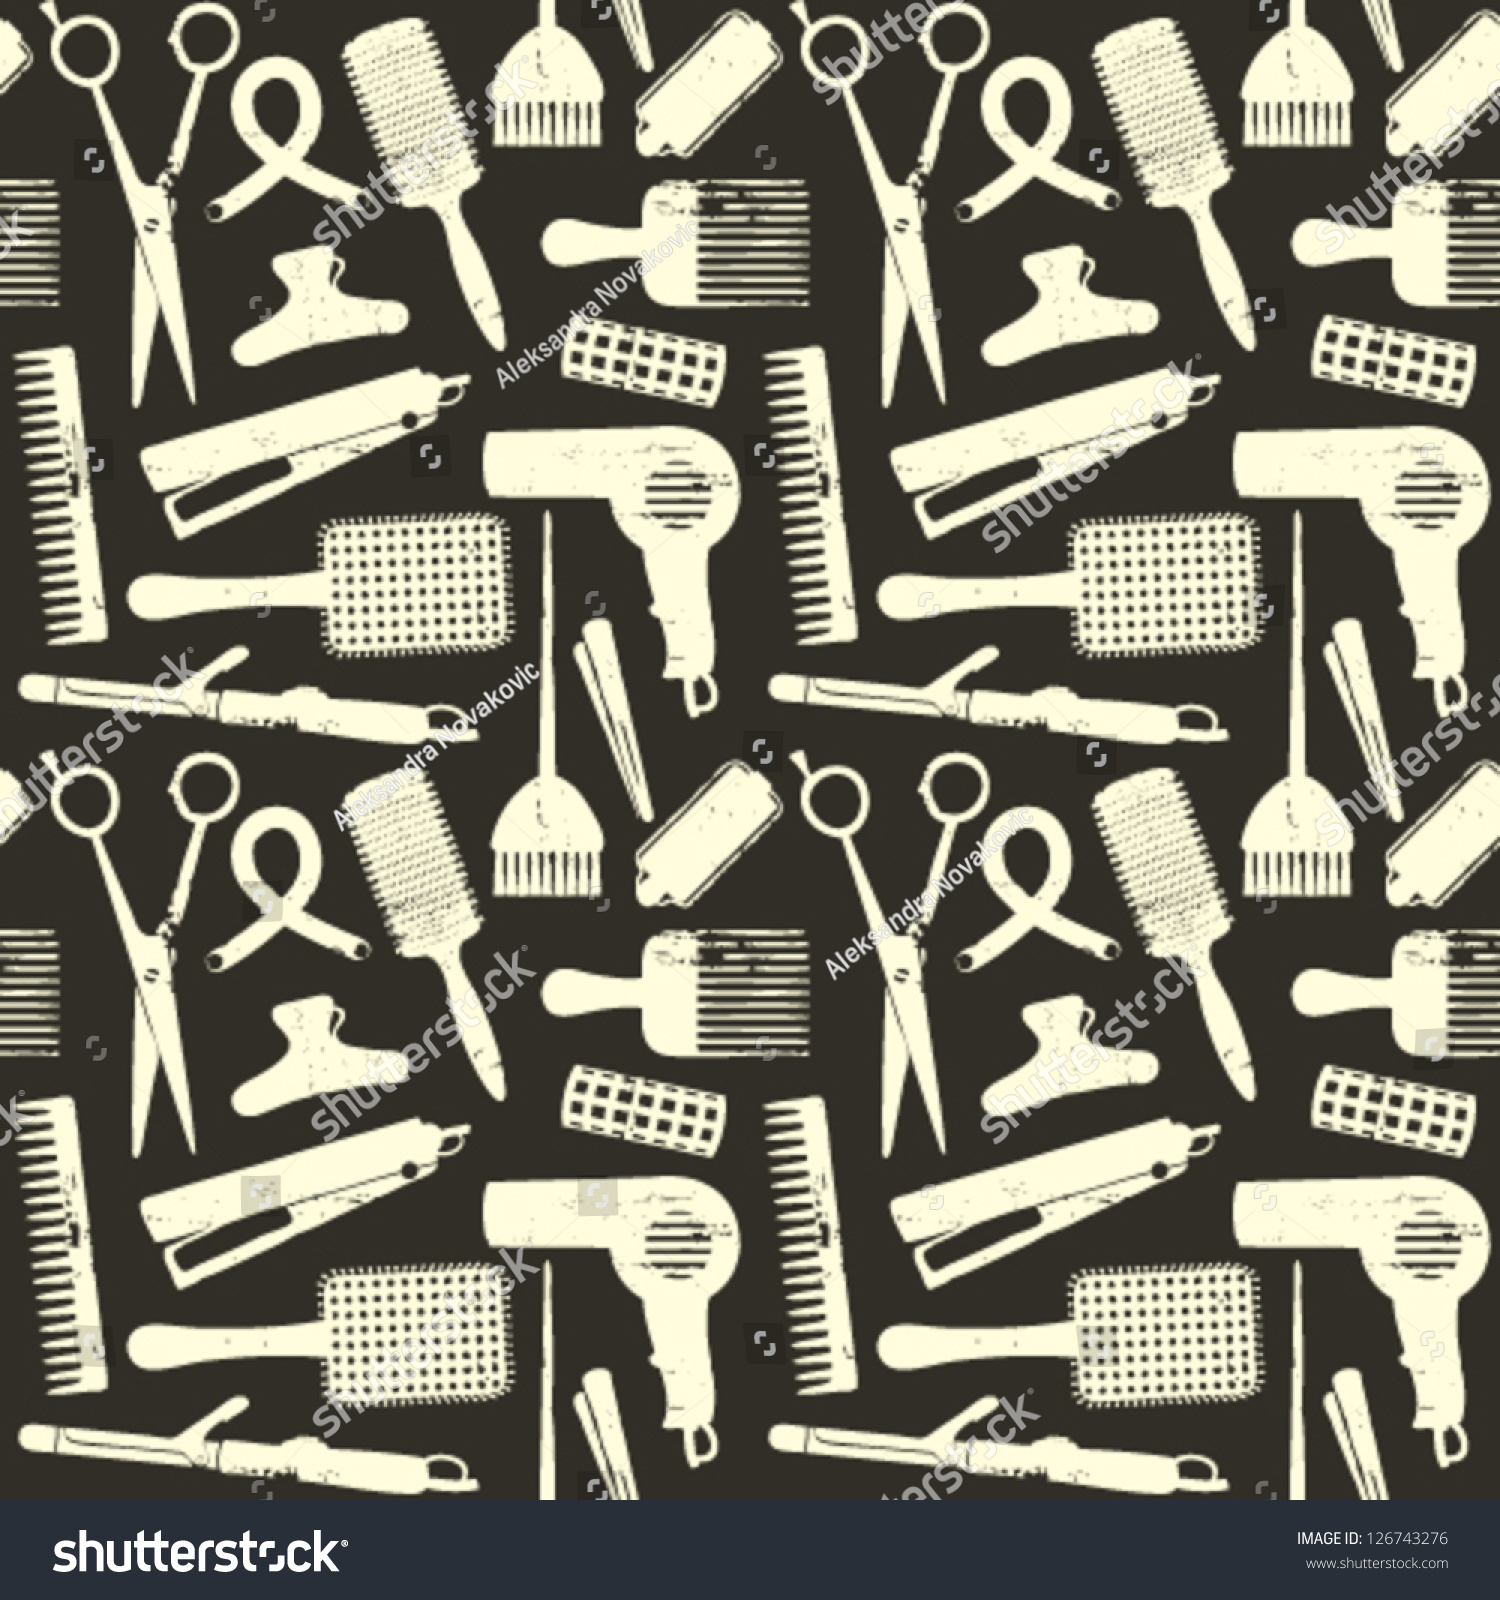 Scratched Hair Styling Related Seamless Pattern On Black ...